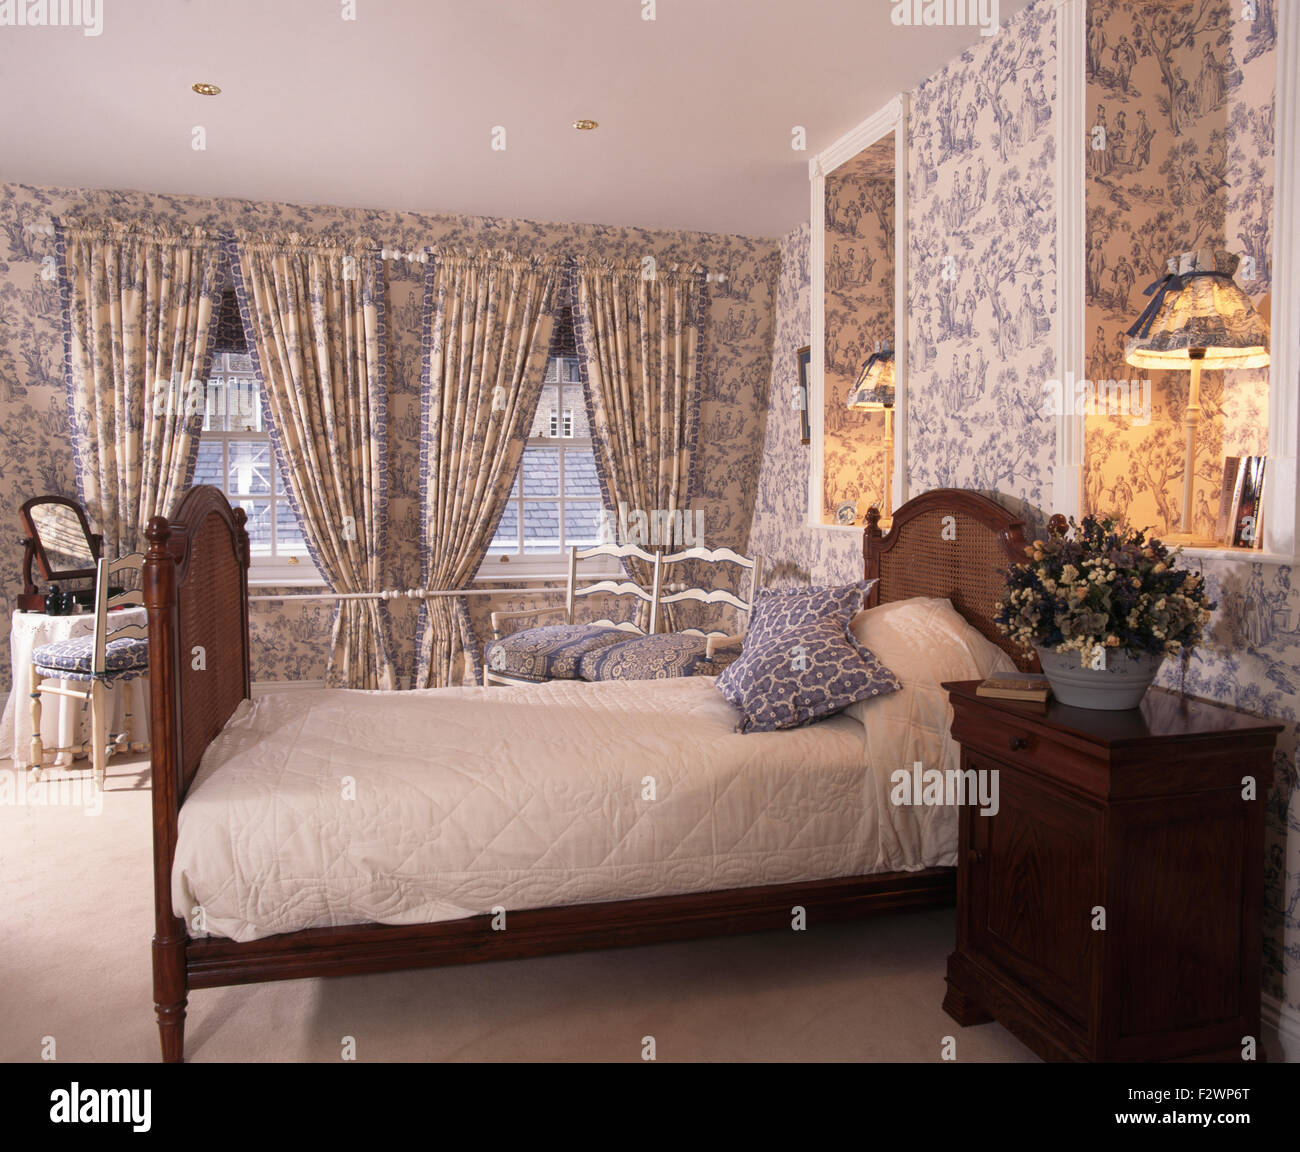 Blue Toile-de-Jouy wallpaper and matching curtains in townhouse bedroom - Stock Image